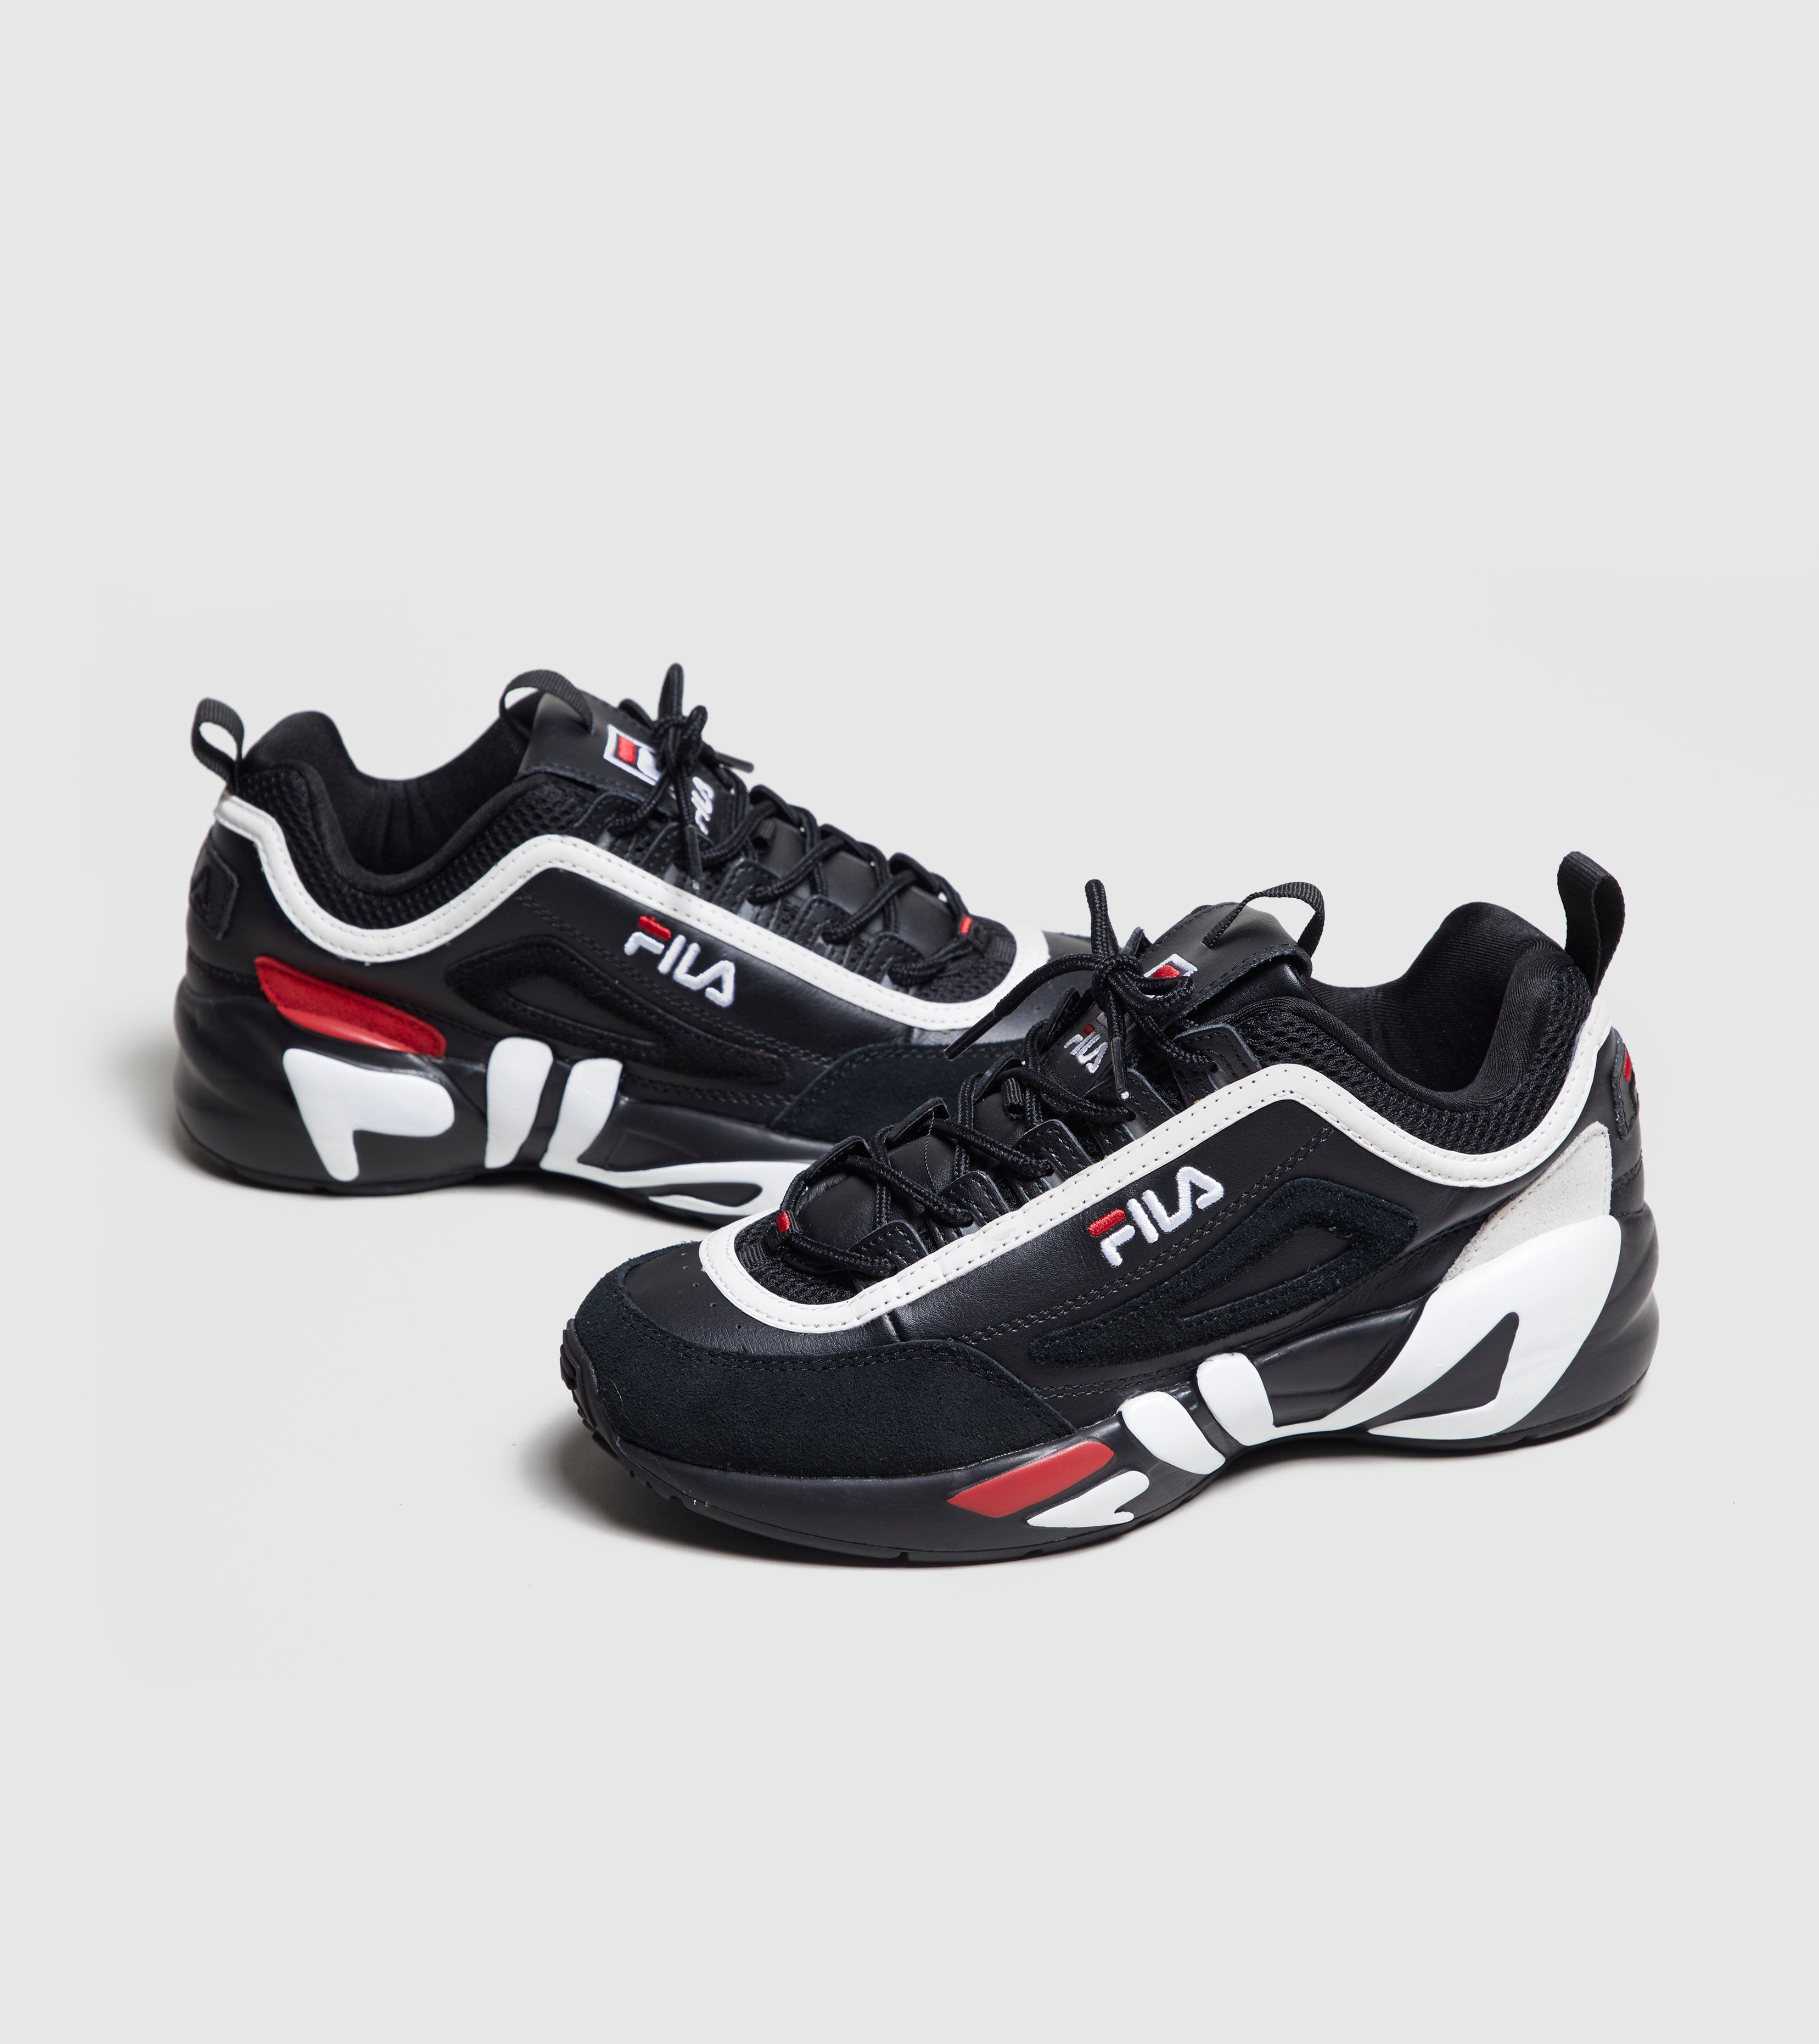 Fila Disblower Women's